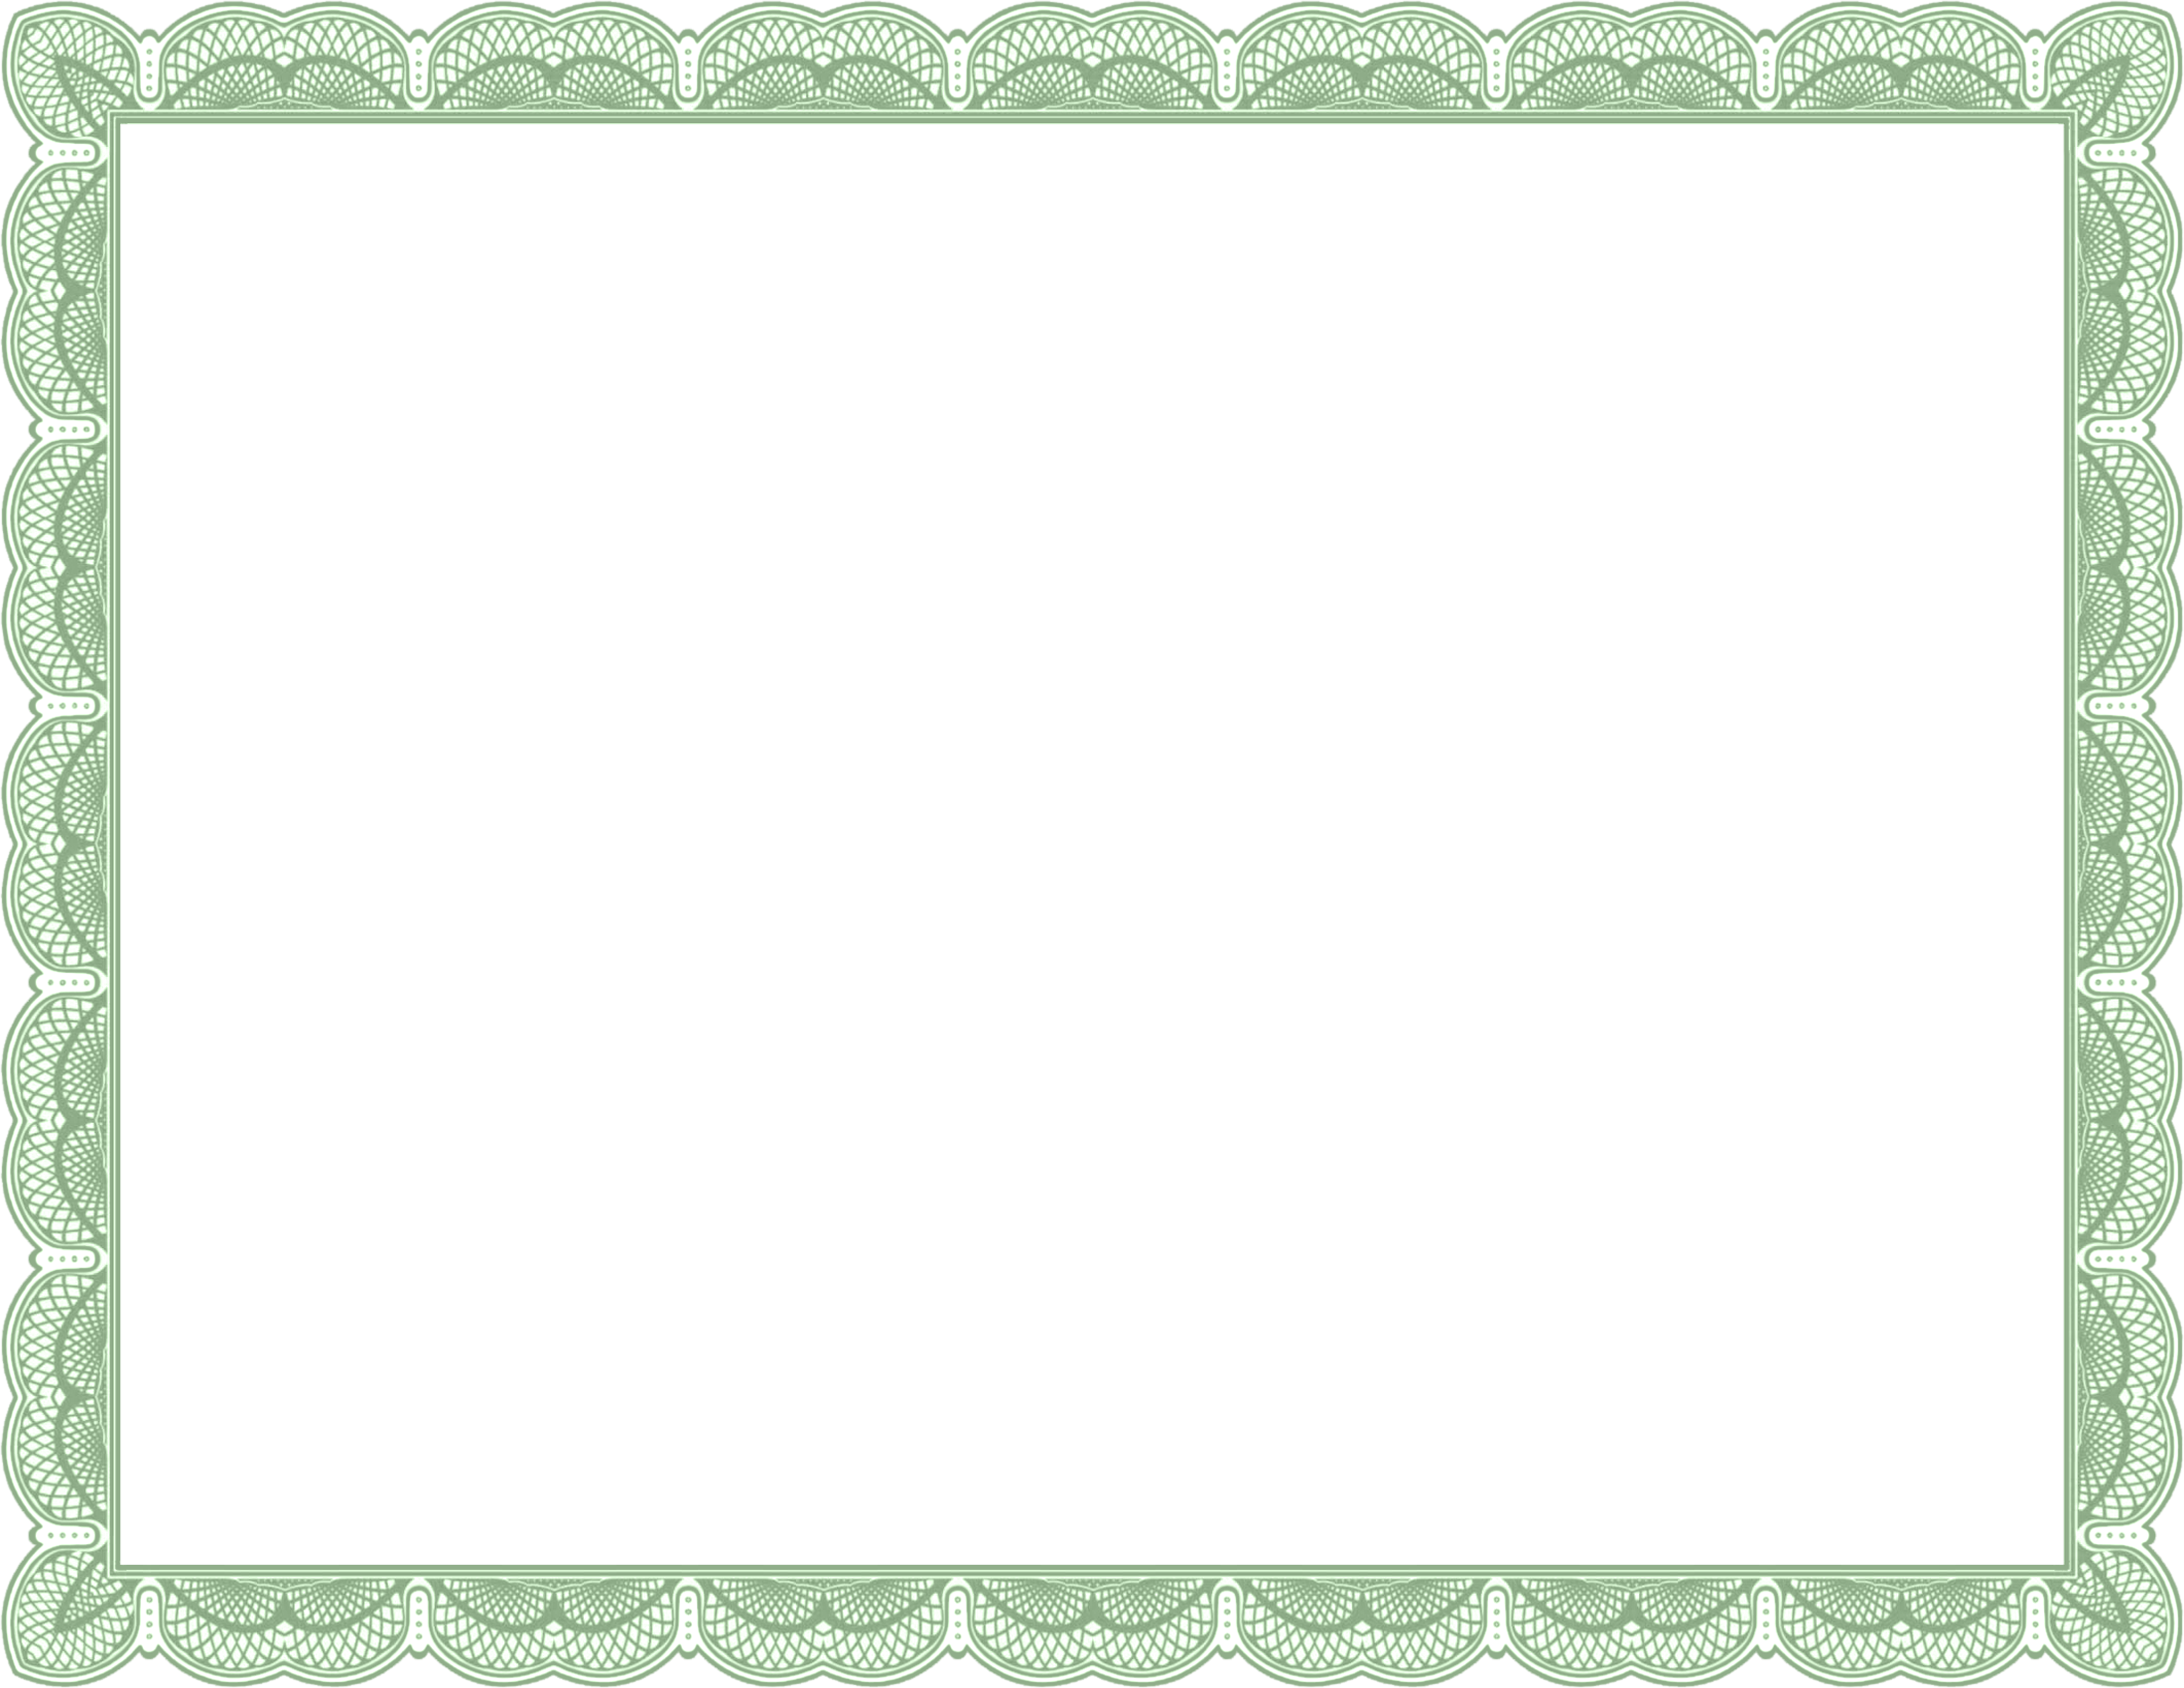 Gift Certificate Border Transparent Png Clipart Free Download Ya.